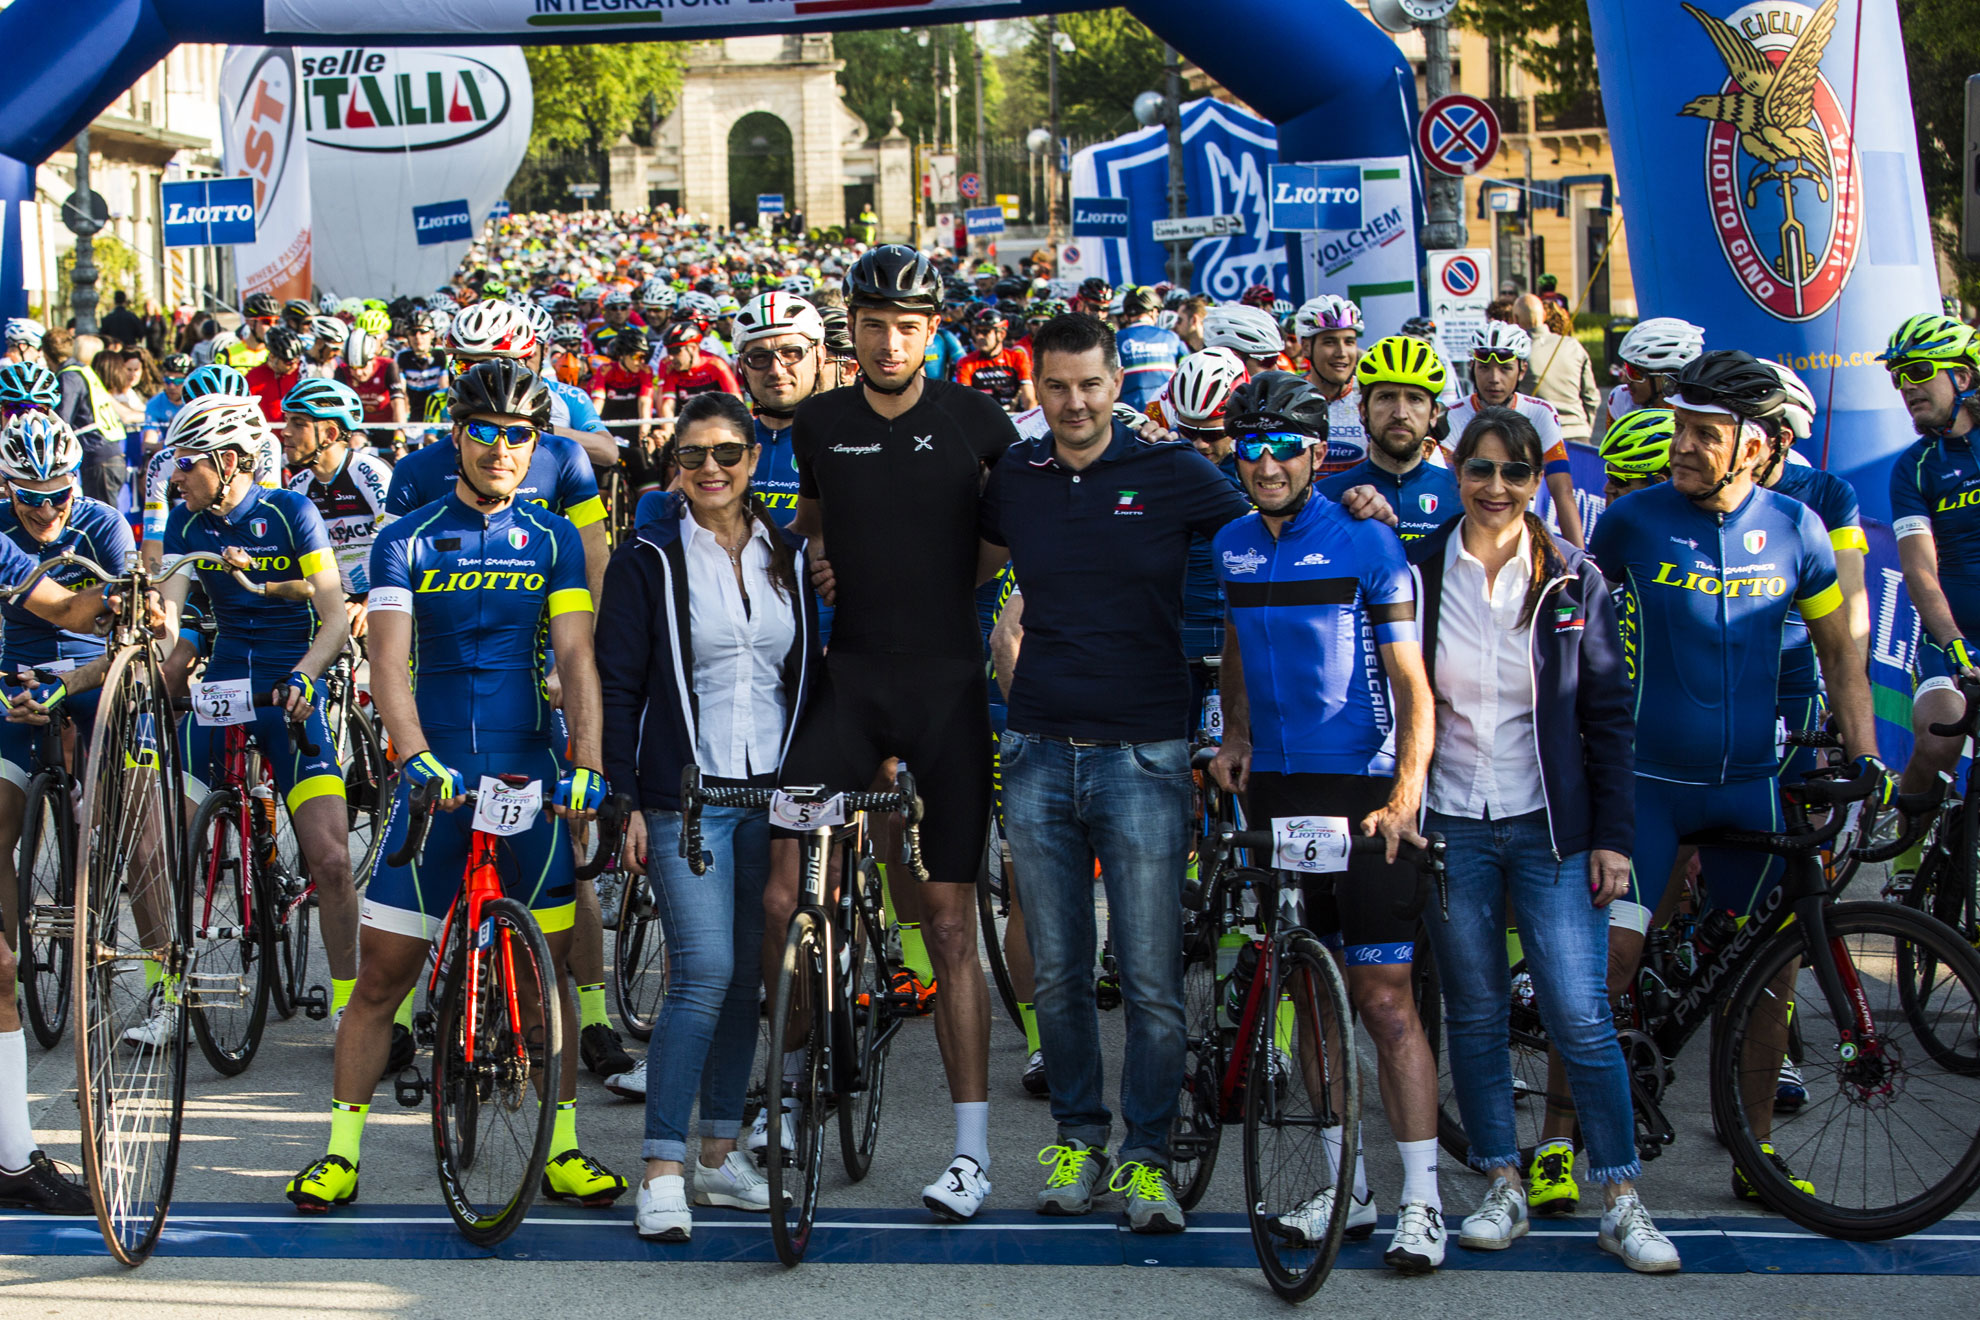 Granfondo Liotto Città di Vicenza 2020 - dalzero.it